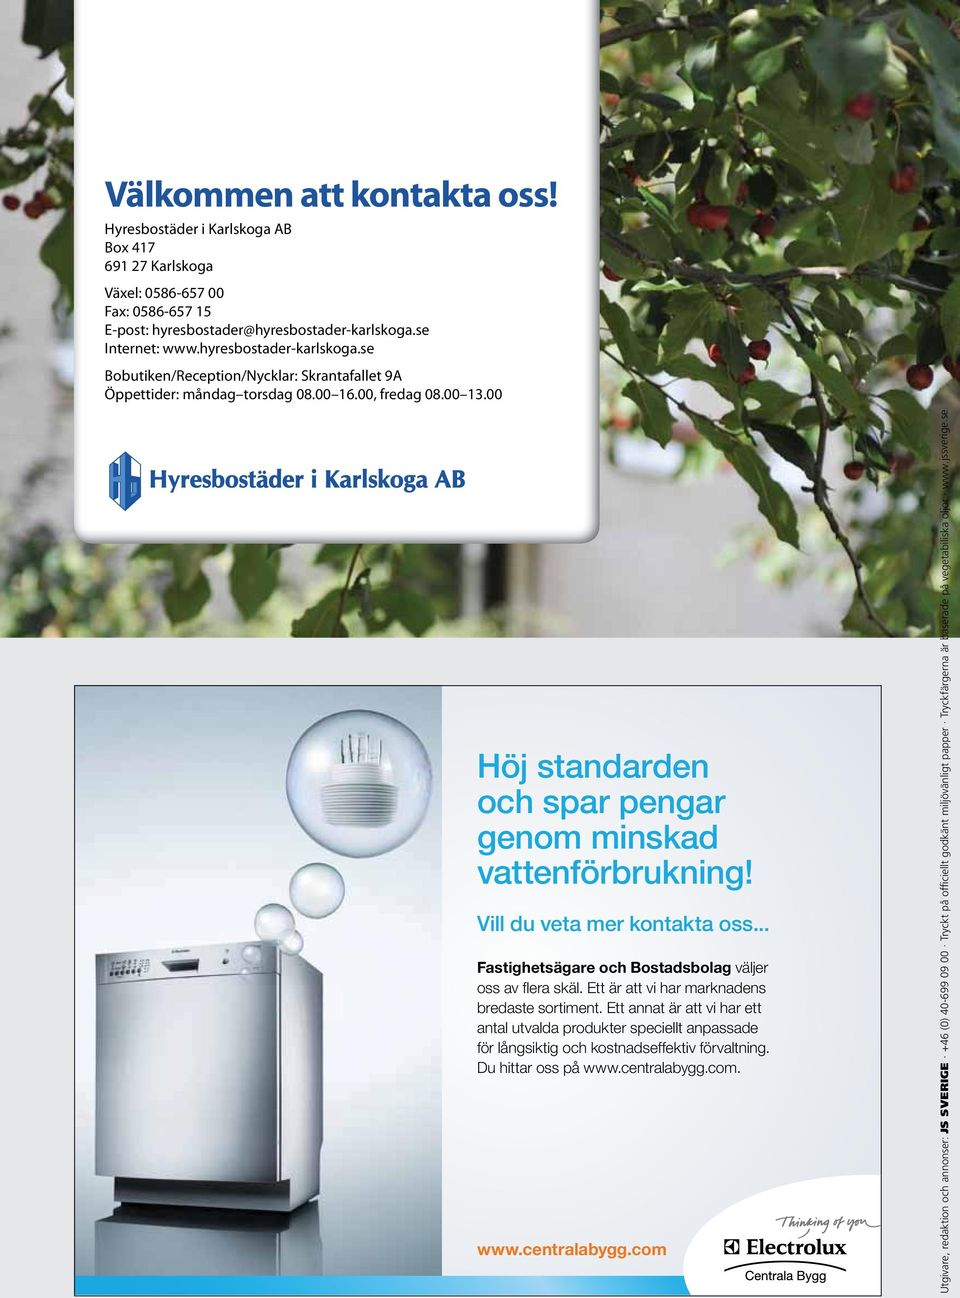 00 Publisher, editor and advertisement booking: JS SVERIGE +46 (0)40-699 09 00 Printed on officially approved environmentally compatible paper Printing inks are based on vegetable oil www.jssverige.